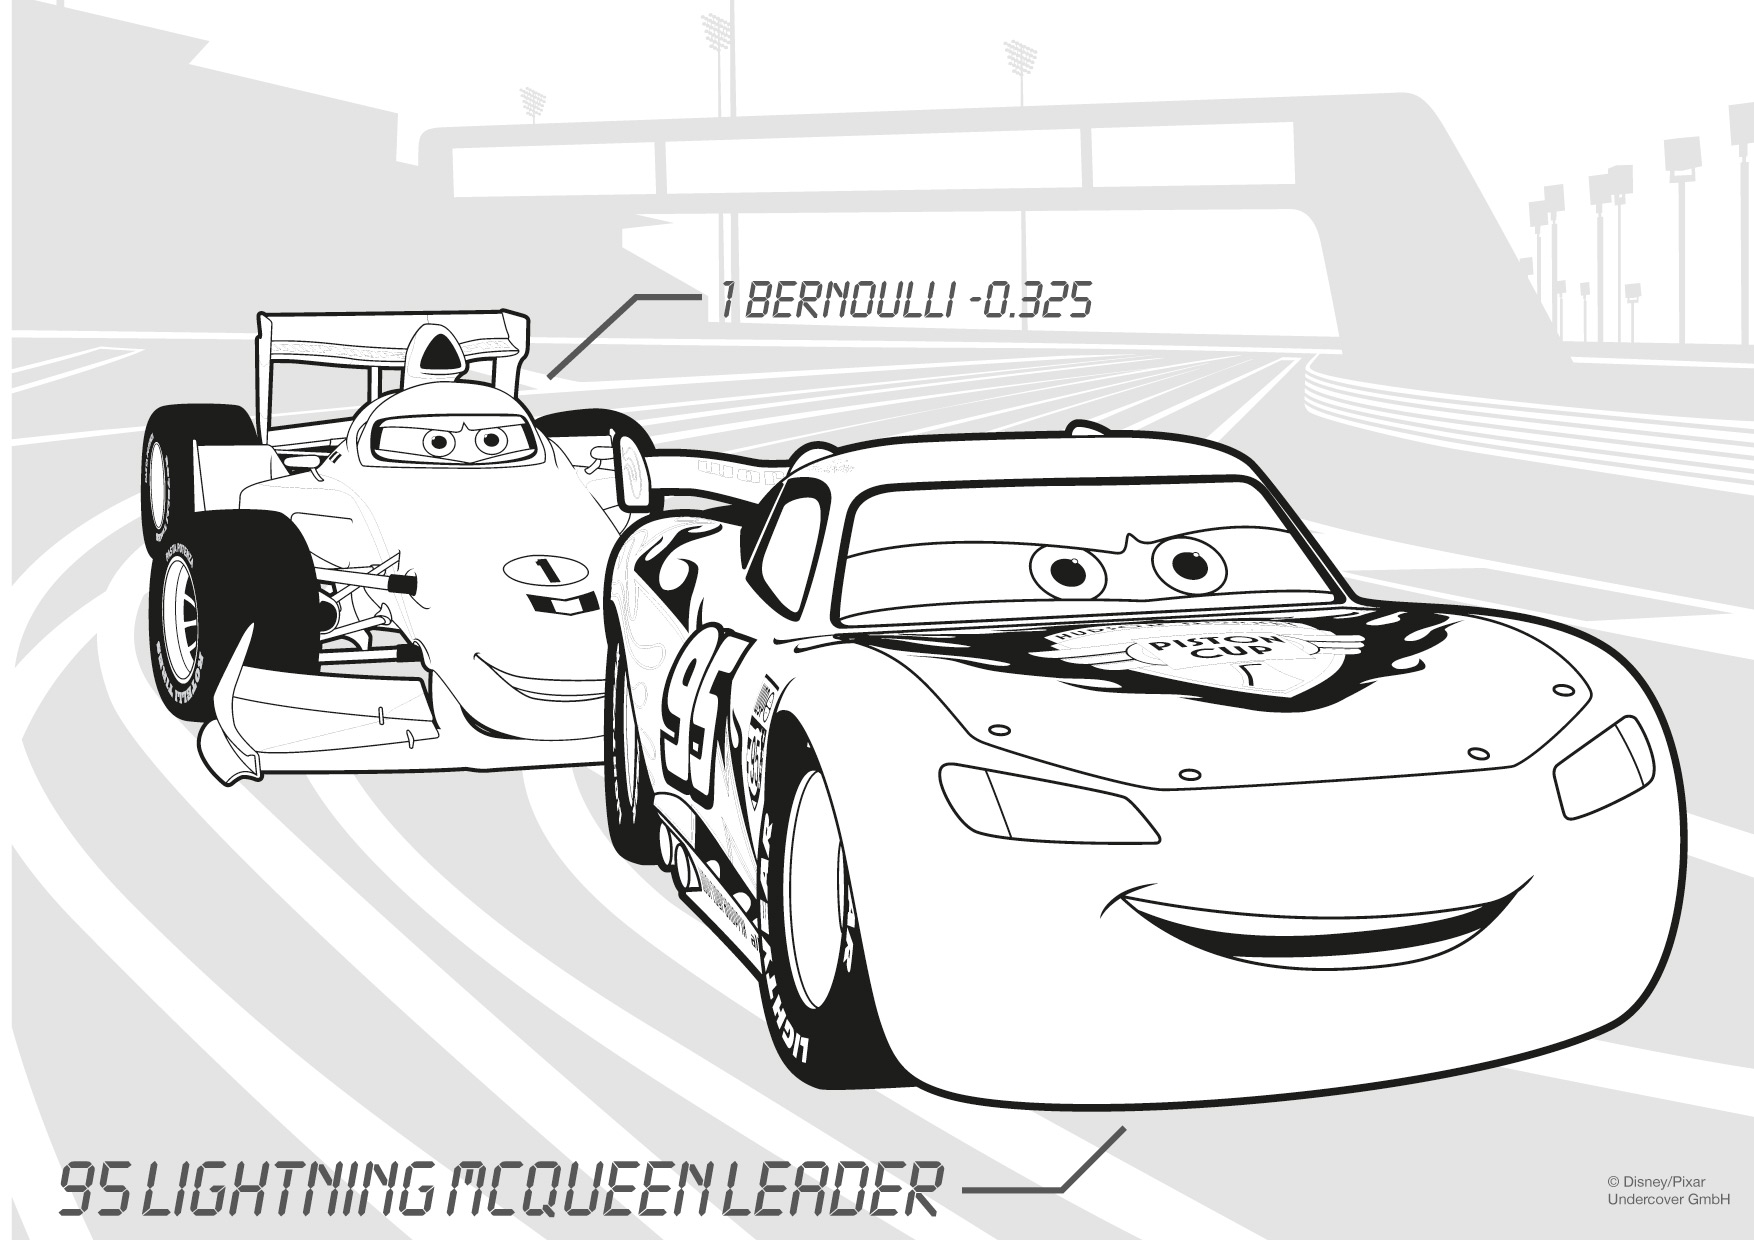 23 Lightning Mcqueen Coloring Pages Collections Free Coloring